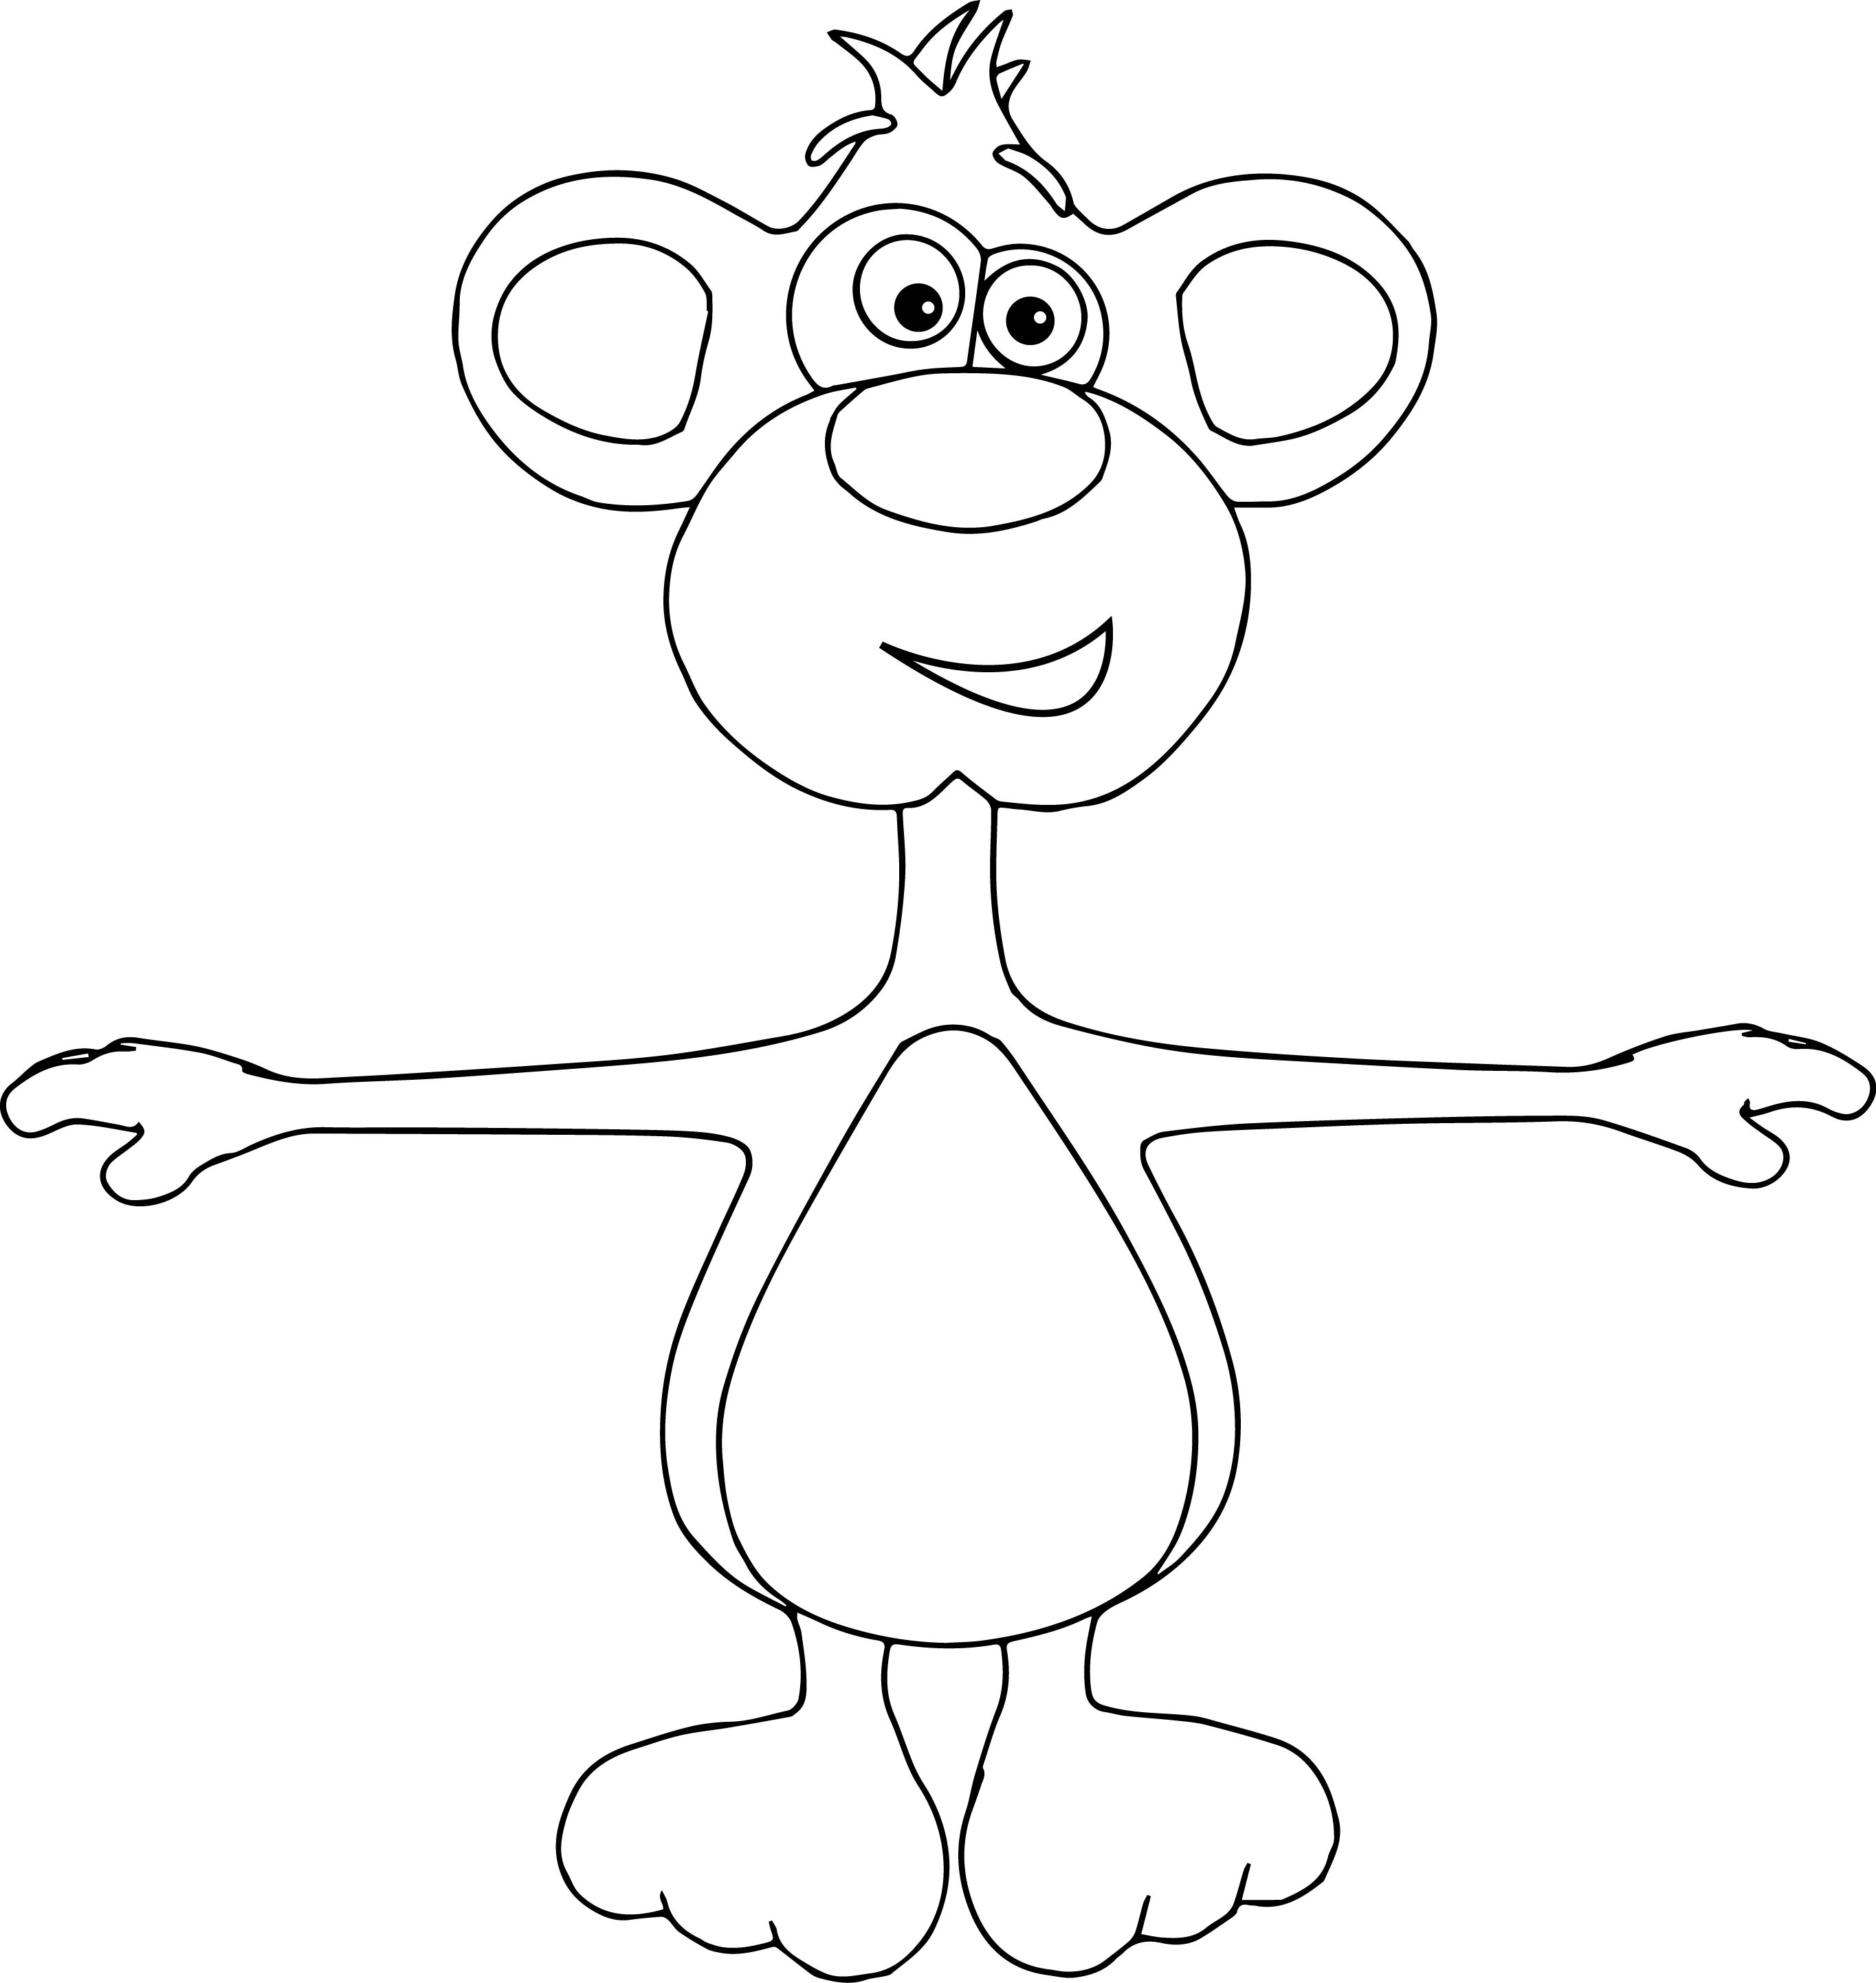 Comic Cartoon Funny Monkey Coloring Page